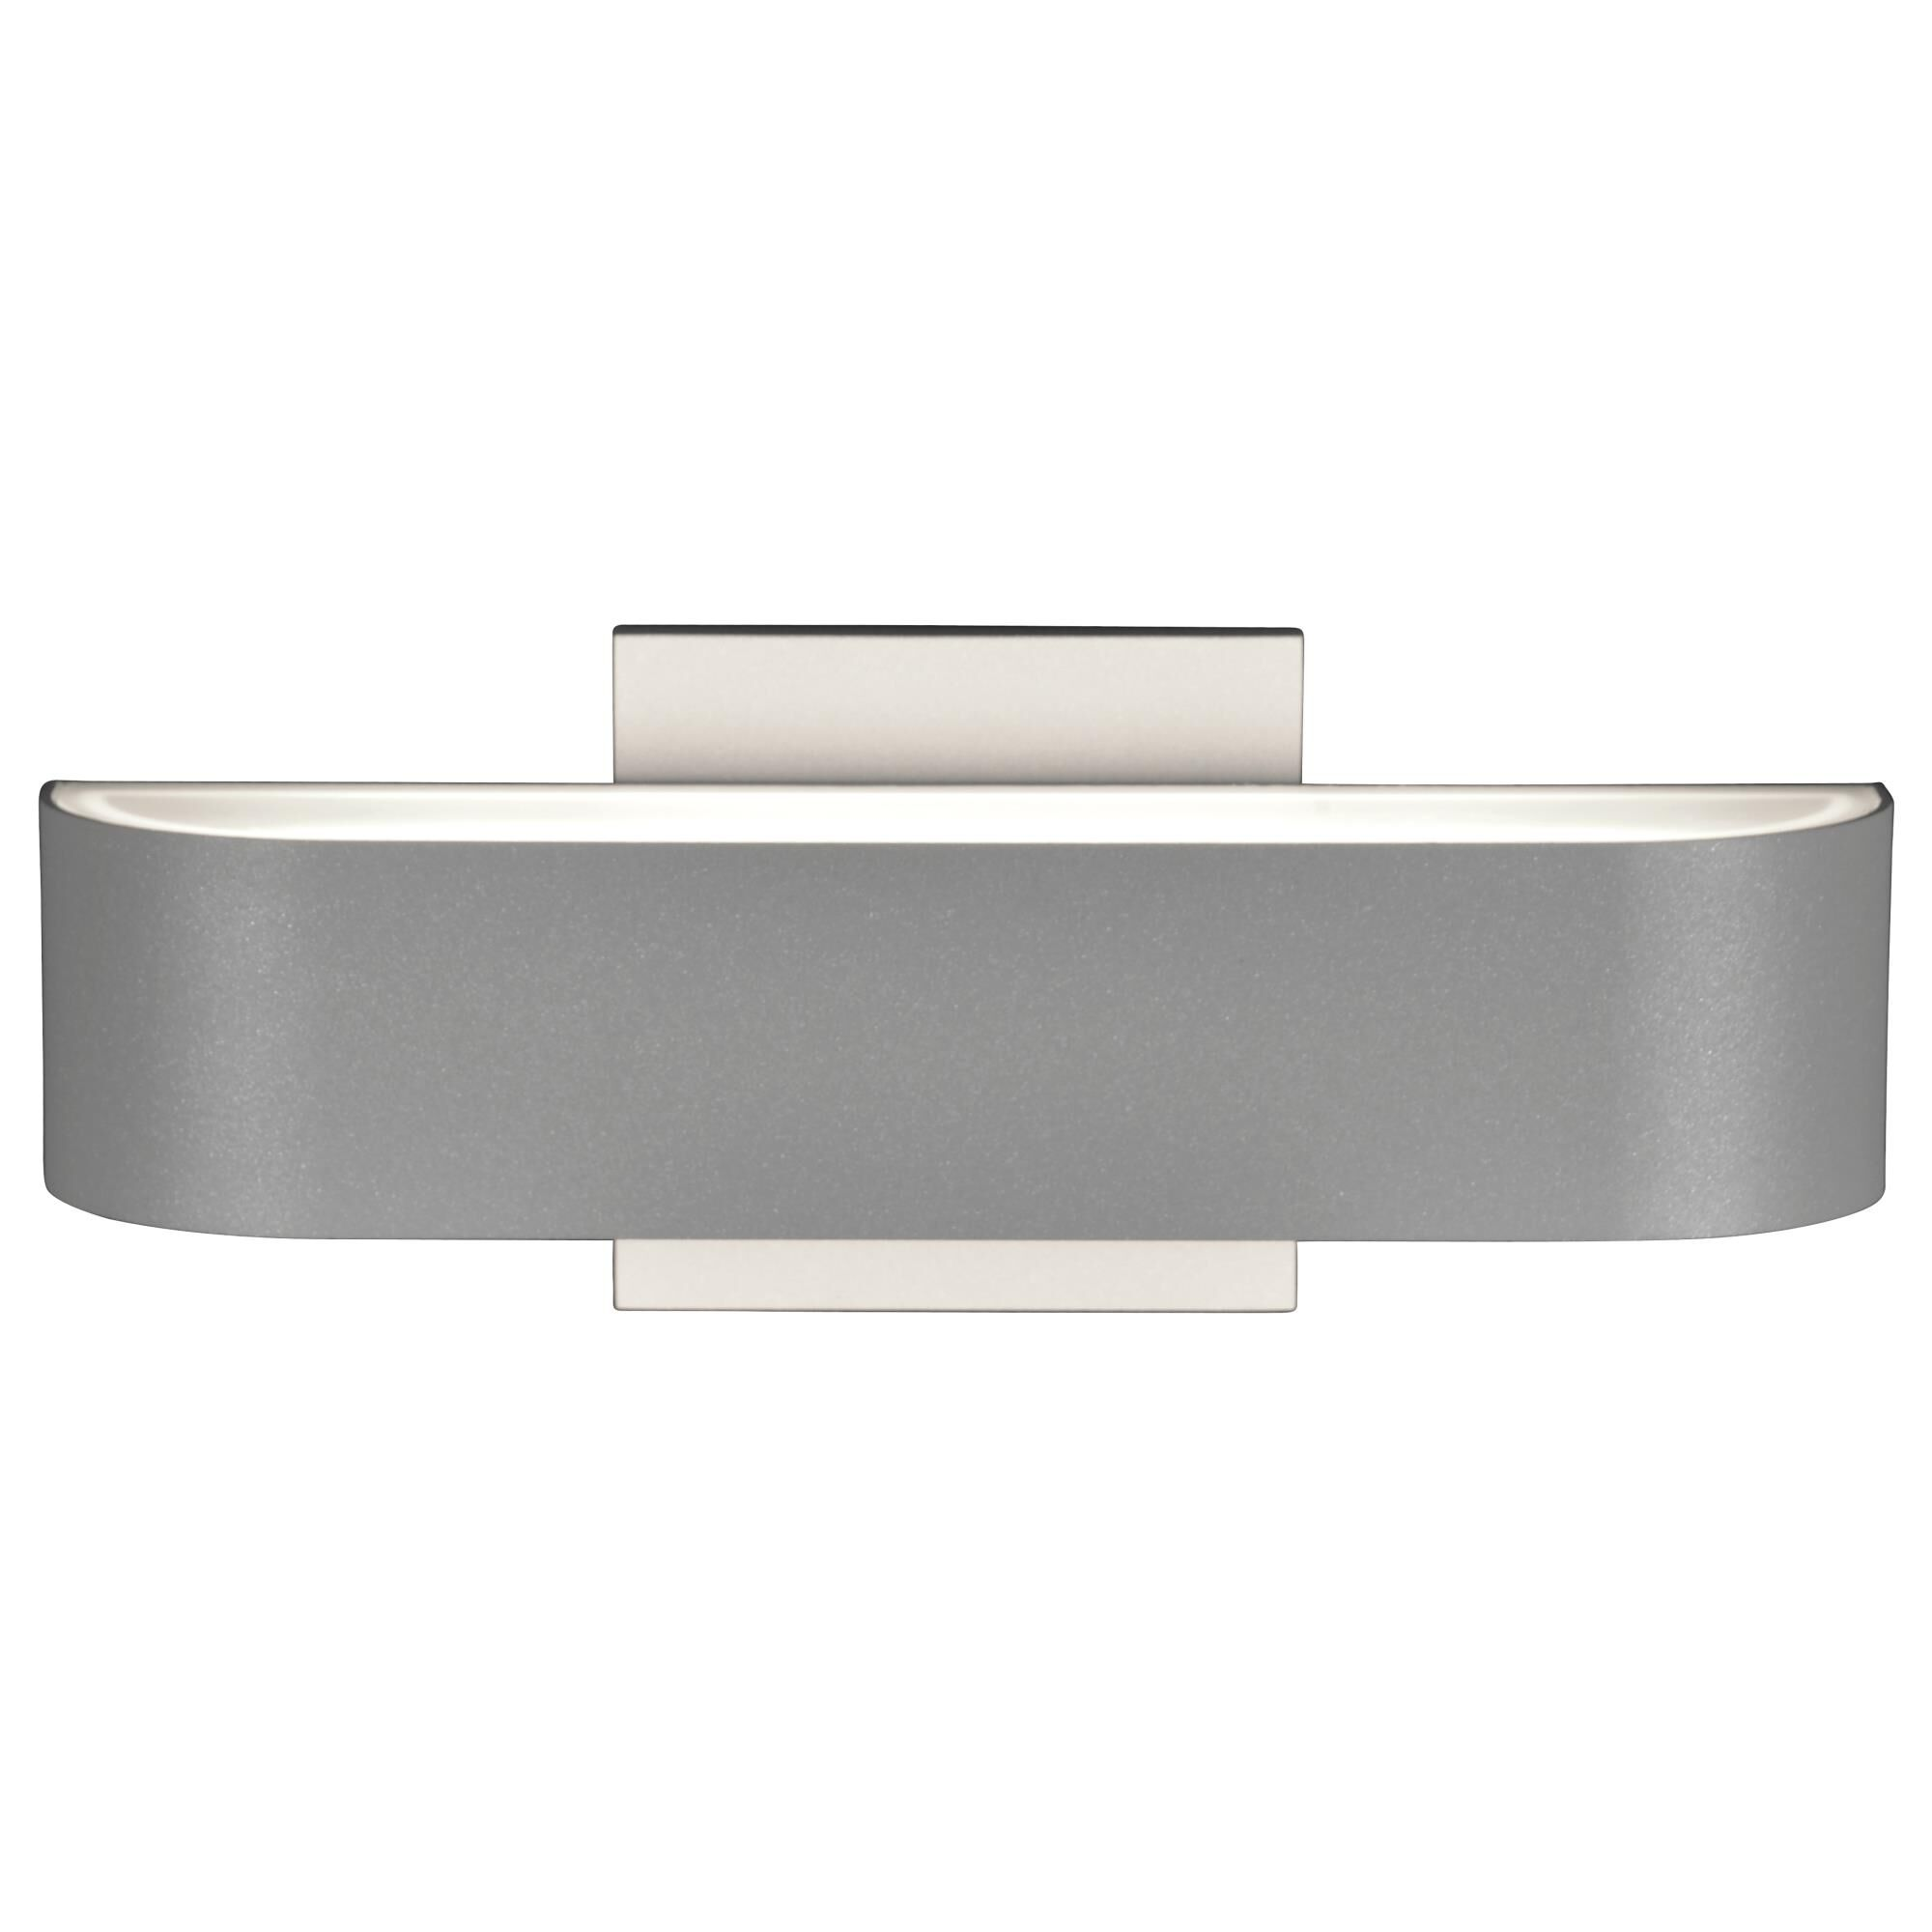 Access Lighting Montreal 2 Inch Tall 2 Light LED Outdoor Wall Light Montreal 20046LEDDMG SATFST Modern Contemporary